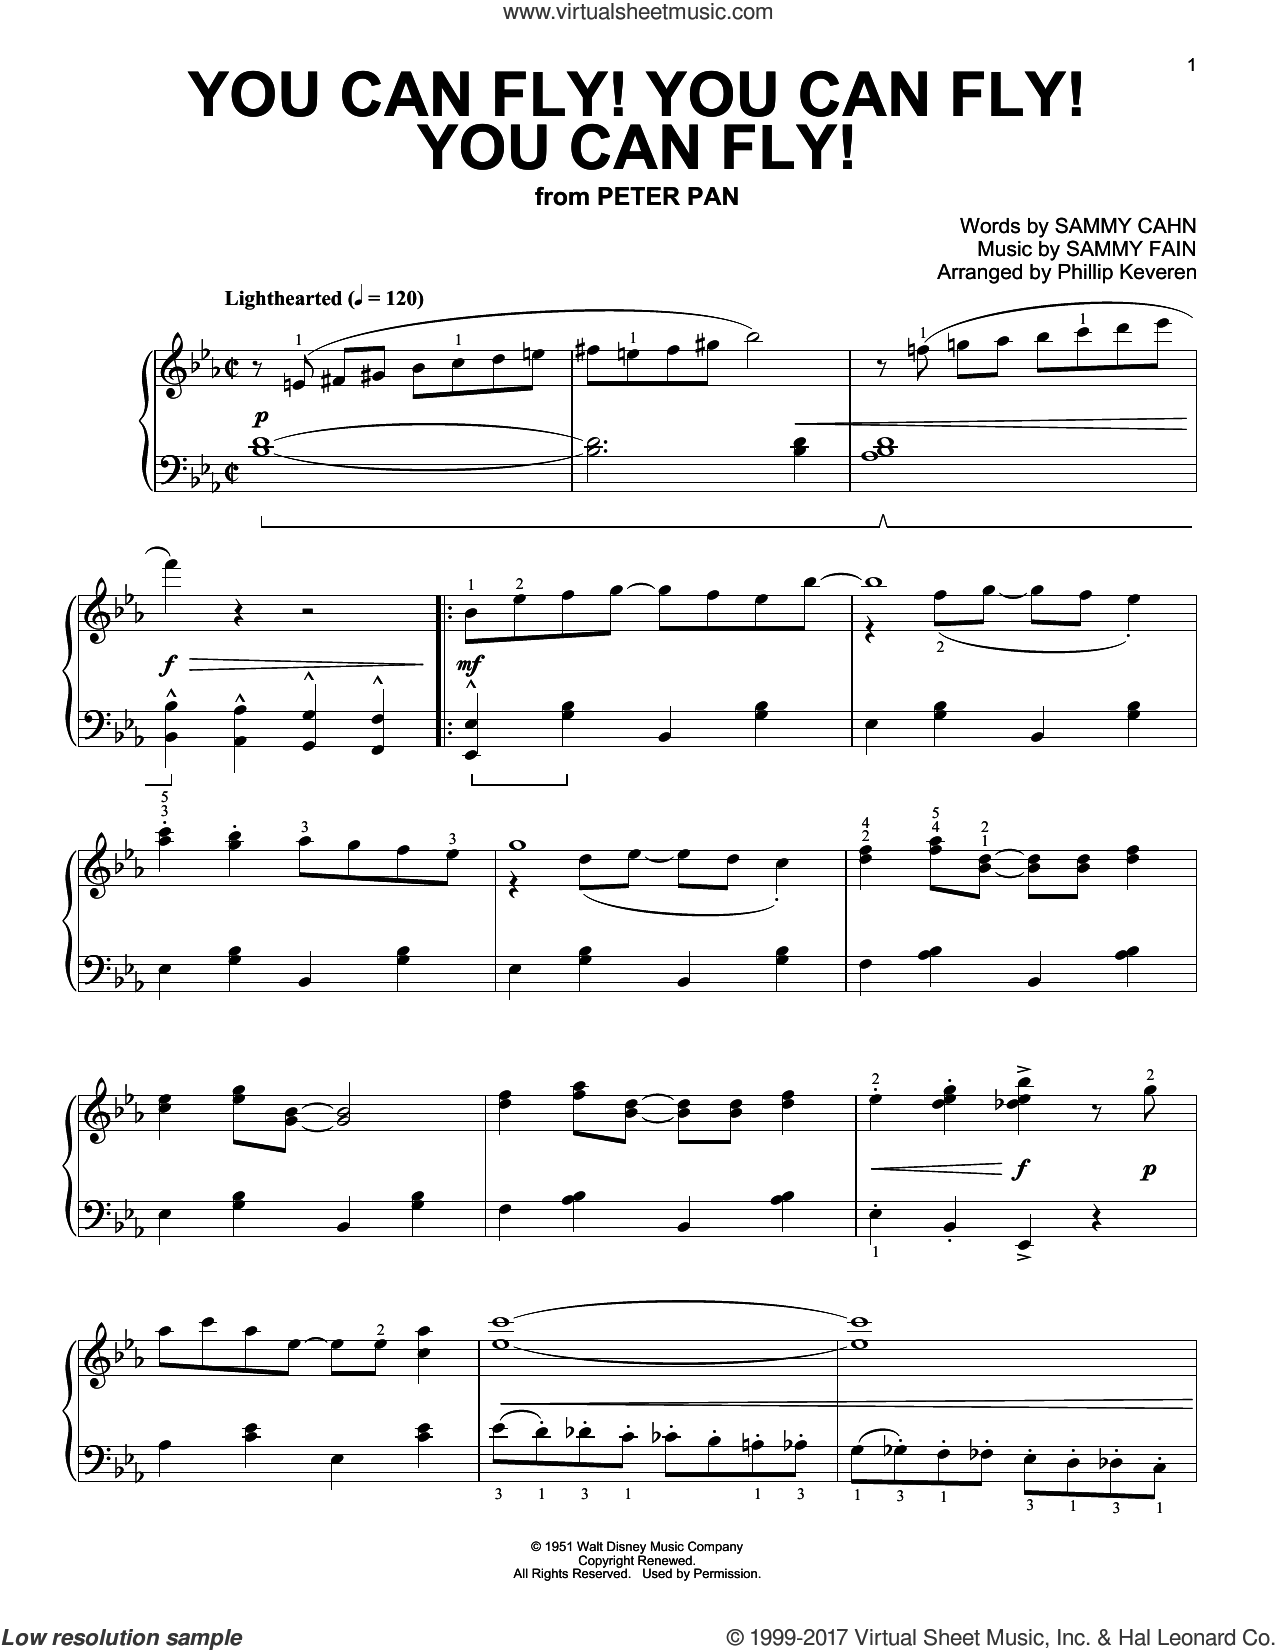 You Can Fly! You Can Fly! You Can Fly!, (intermediate) sheet music for piano solo by Sammy Cahn, Phillip Keveren and Sammy Fain, intermediate. Score Image Preview.